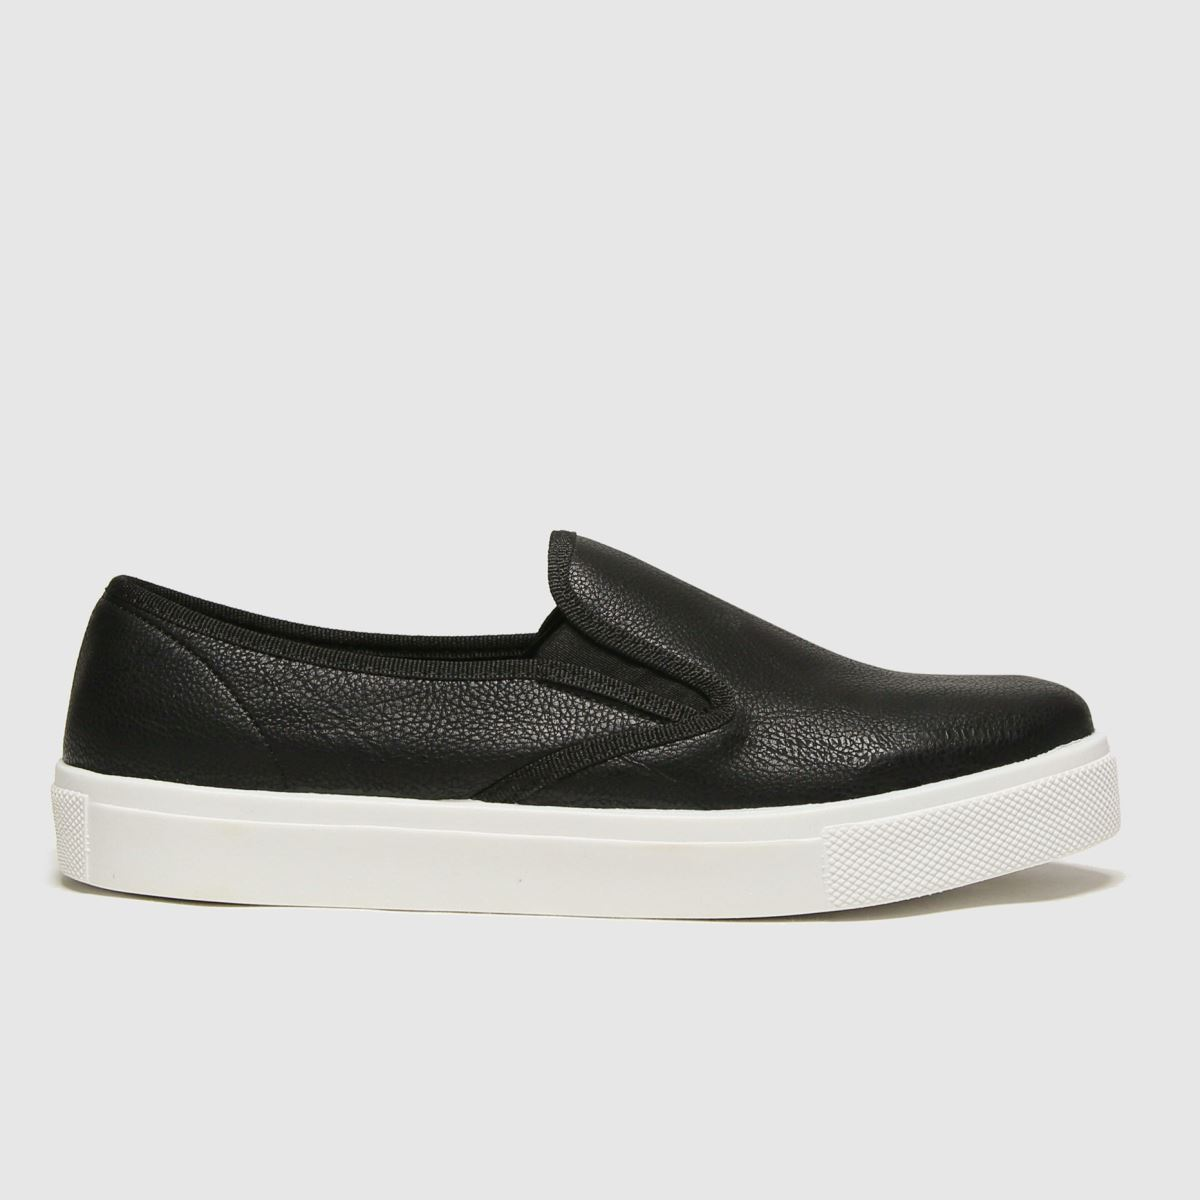 schuh Schuh Black & White Awesome Slip On Ii Trainers